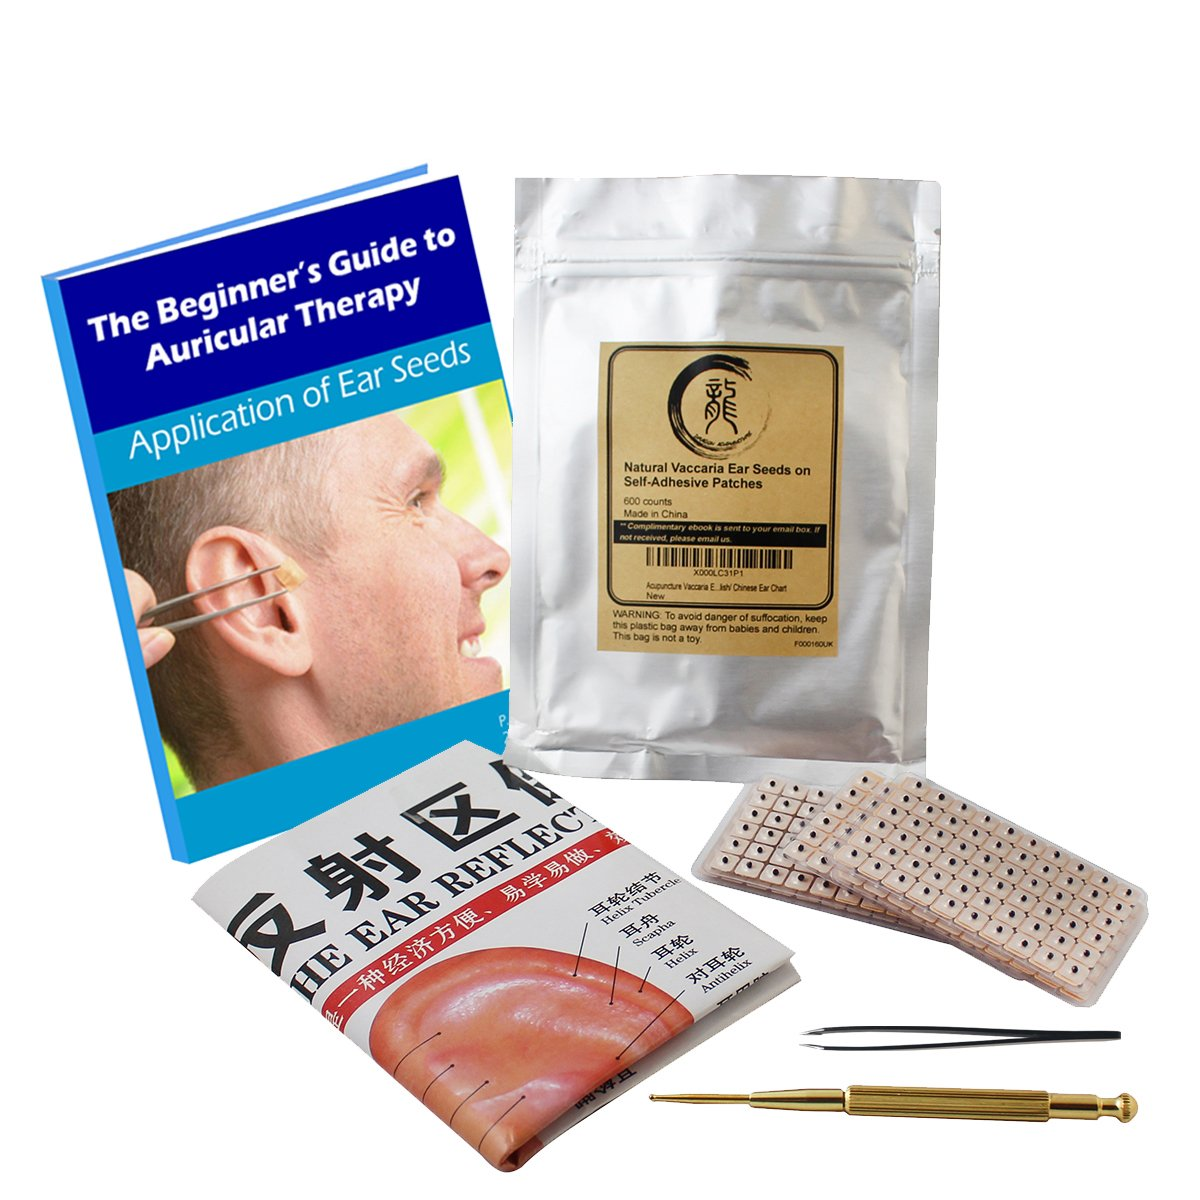 Multi-Condition Ear Seed Acupressure Kit 600 counts, eBook Placement Chart, Probe, Acupuncture Ear Chart, Tweezers by Dragon Acupuncture